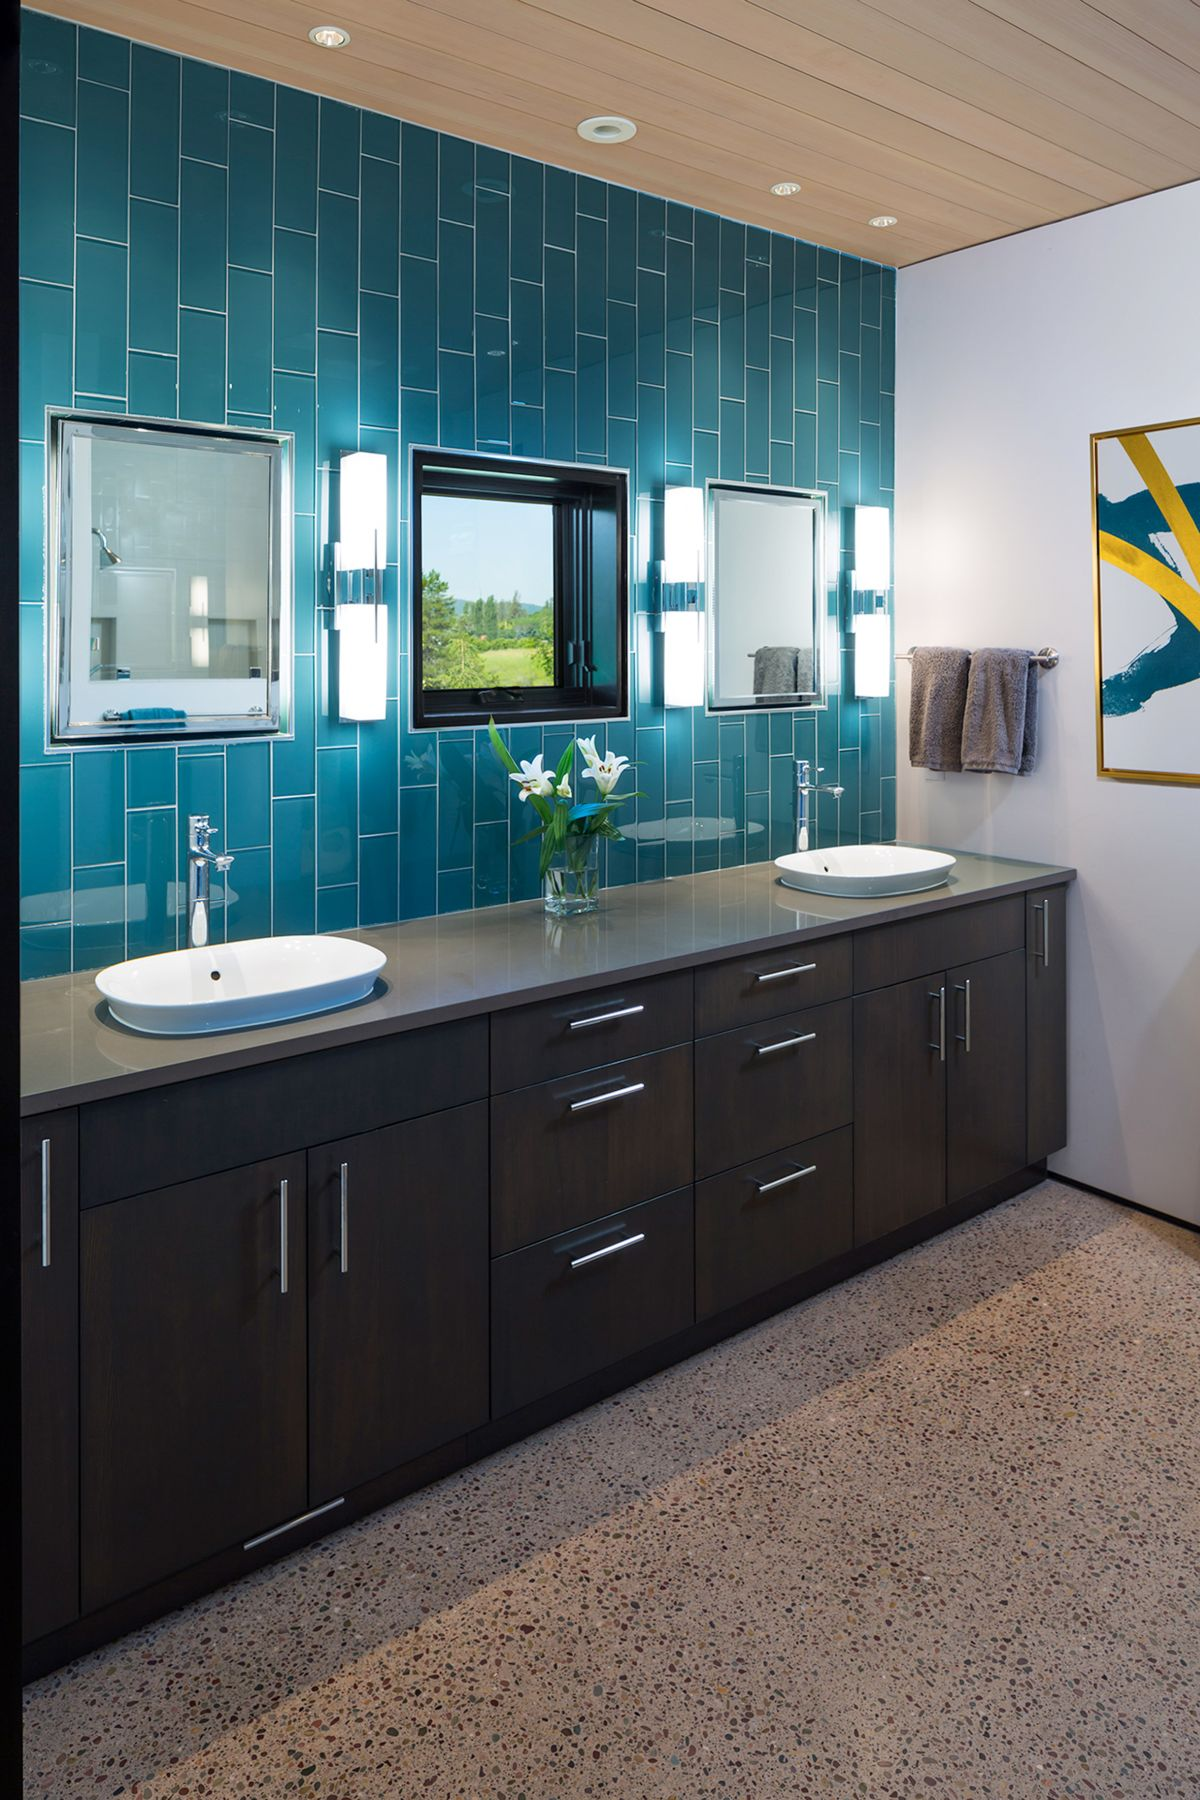 The main bathroom has the same turquoise accents as the kitchen